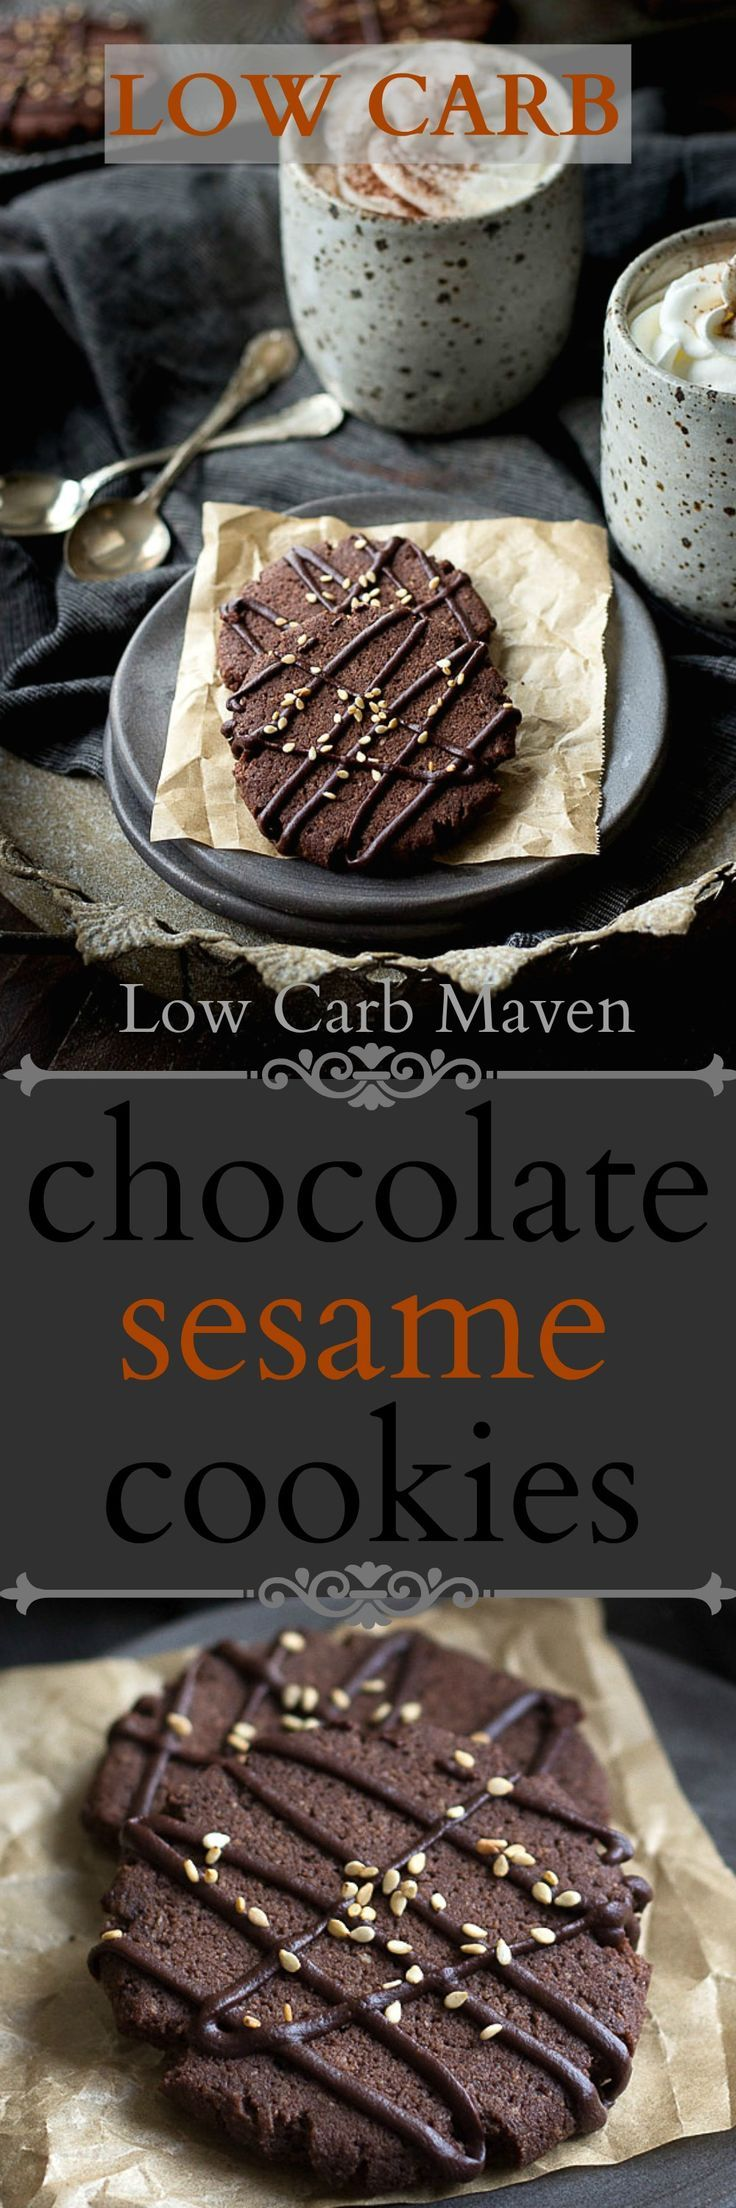 226 best Low Carb Chocolate Recipes - Keto | LCHF images on ...